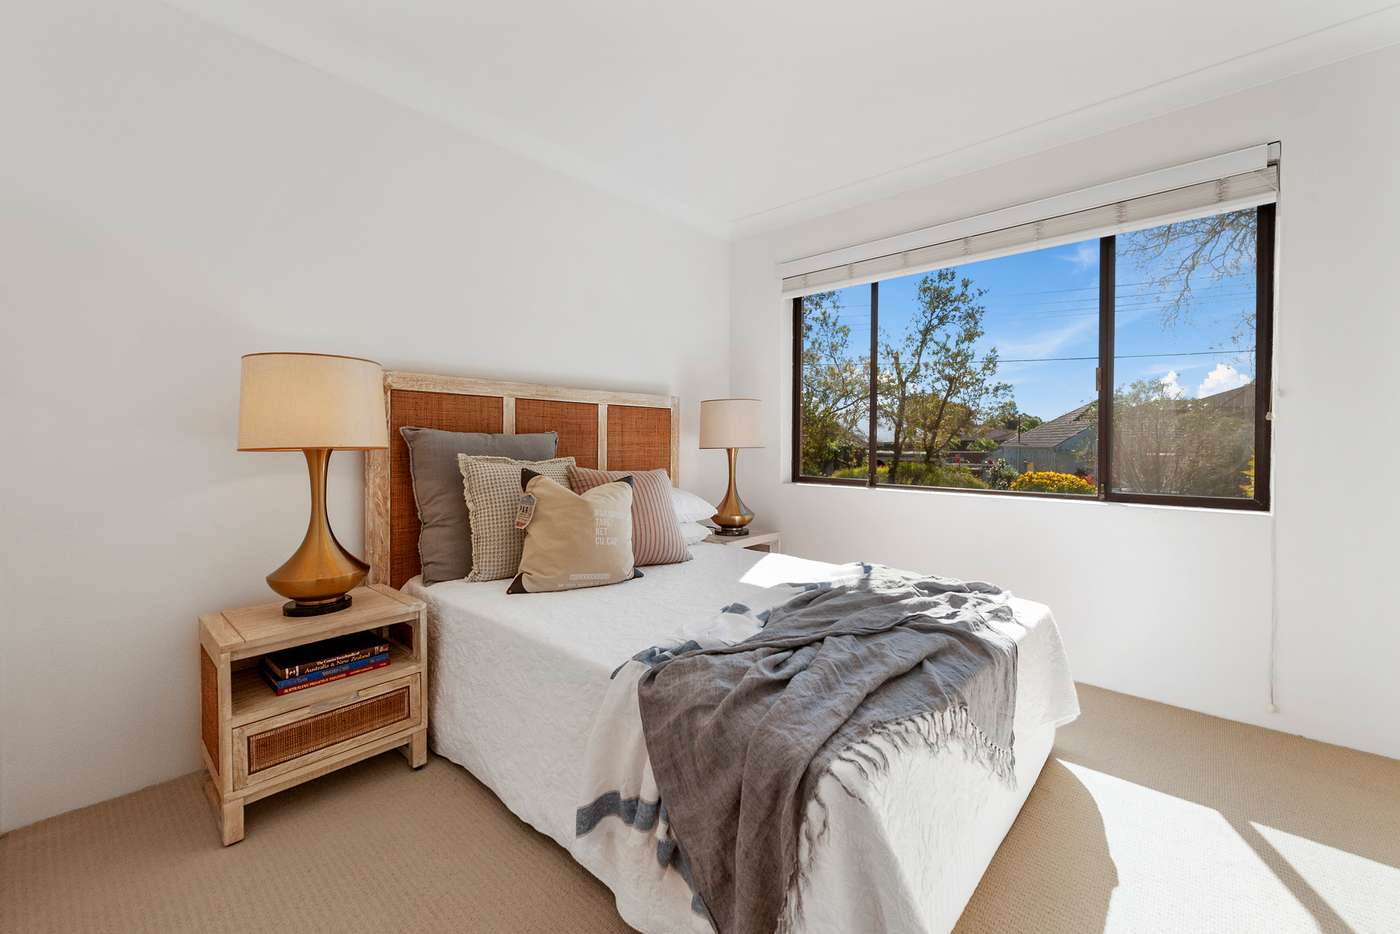 Fifth view of Homely apartment listing, 2/44-46 Florence Street, Hornsby NSW 2077